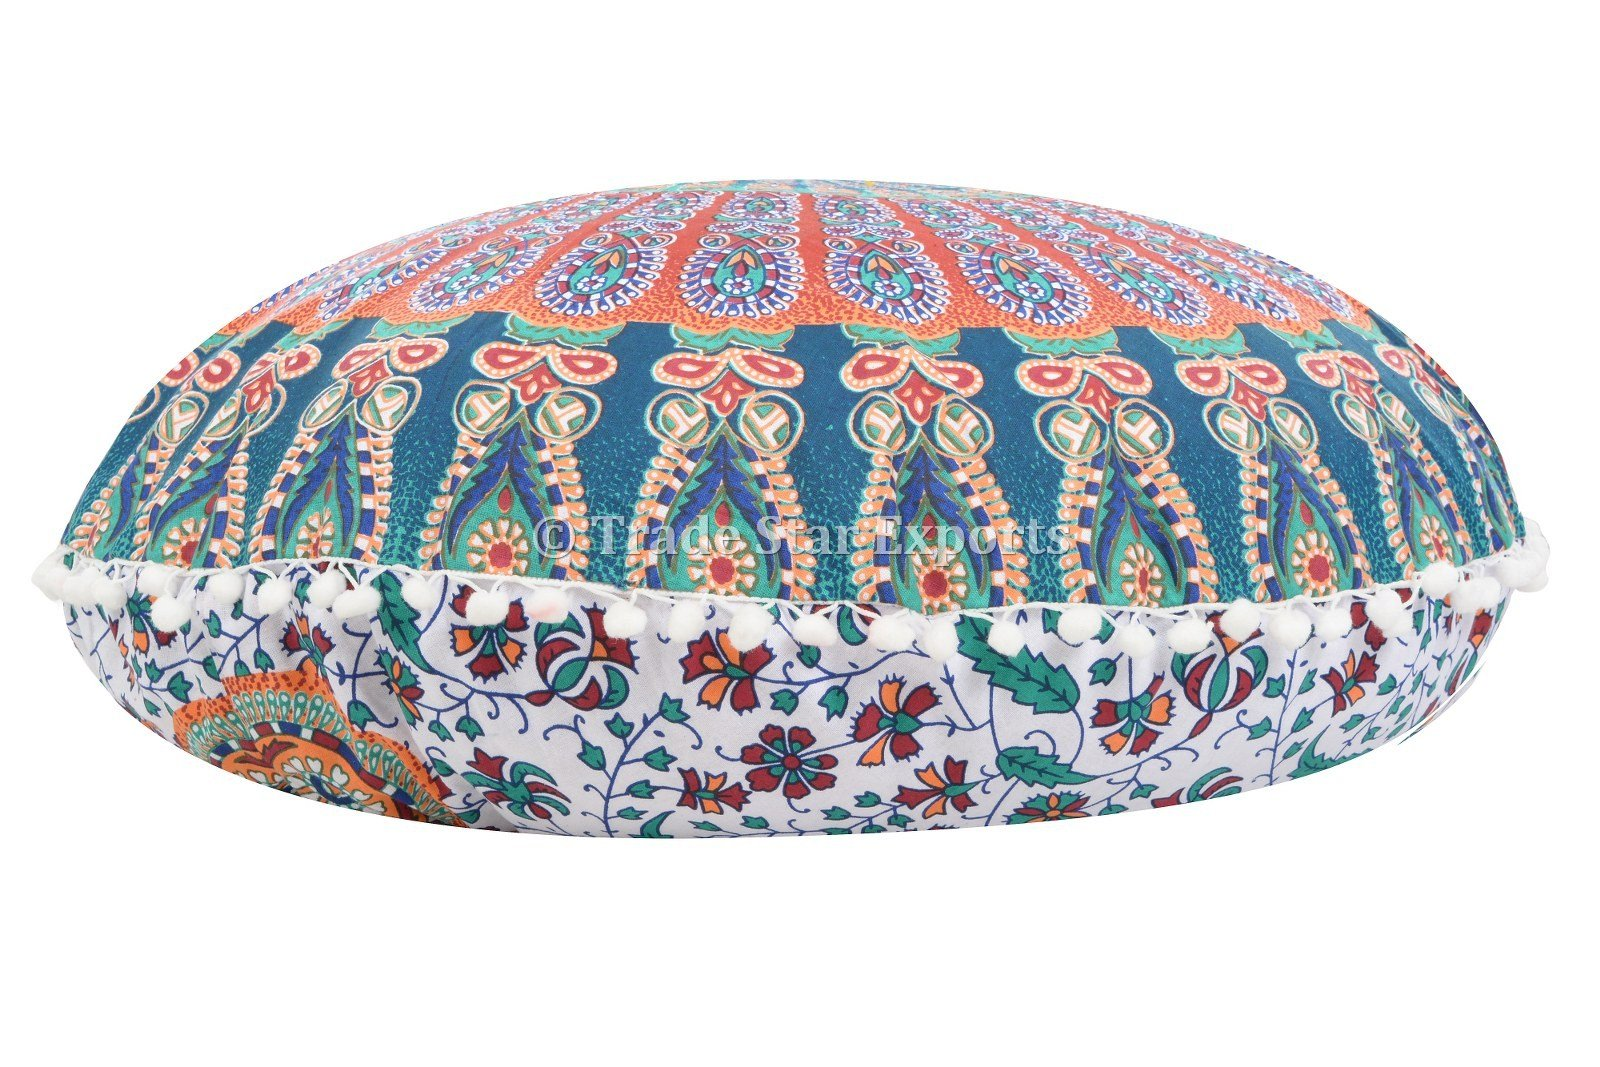 Large 32'' Round Pillow Cover, Decorative Mandala Pillow Sham, Indian Bohemian Ottoman Poufs, Pom Pom Pillow Cases, Outdoor Cushion Cover (Pattern 6)